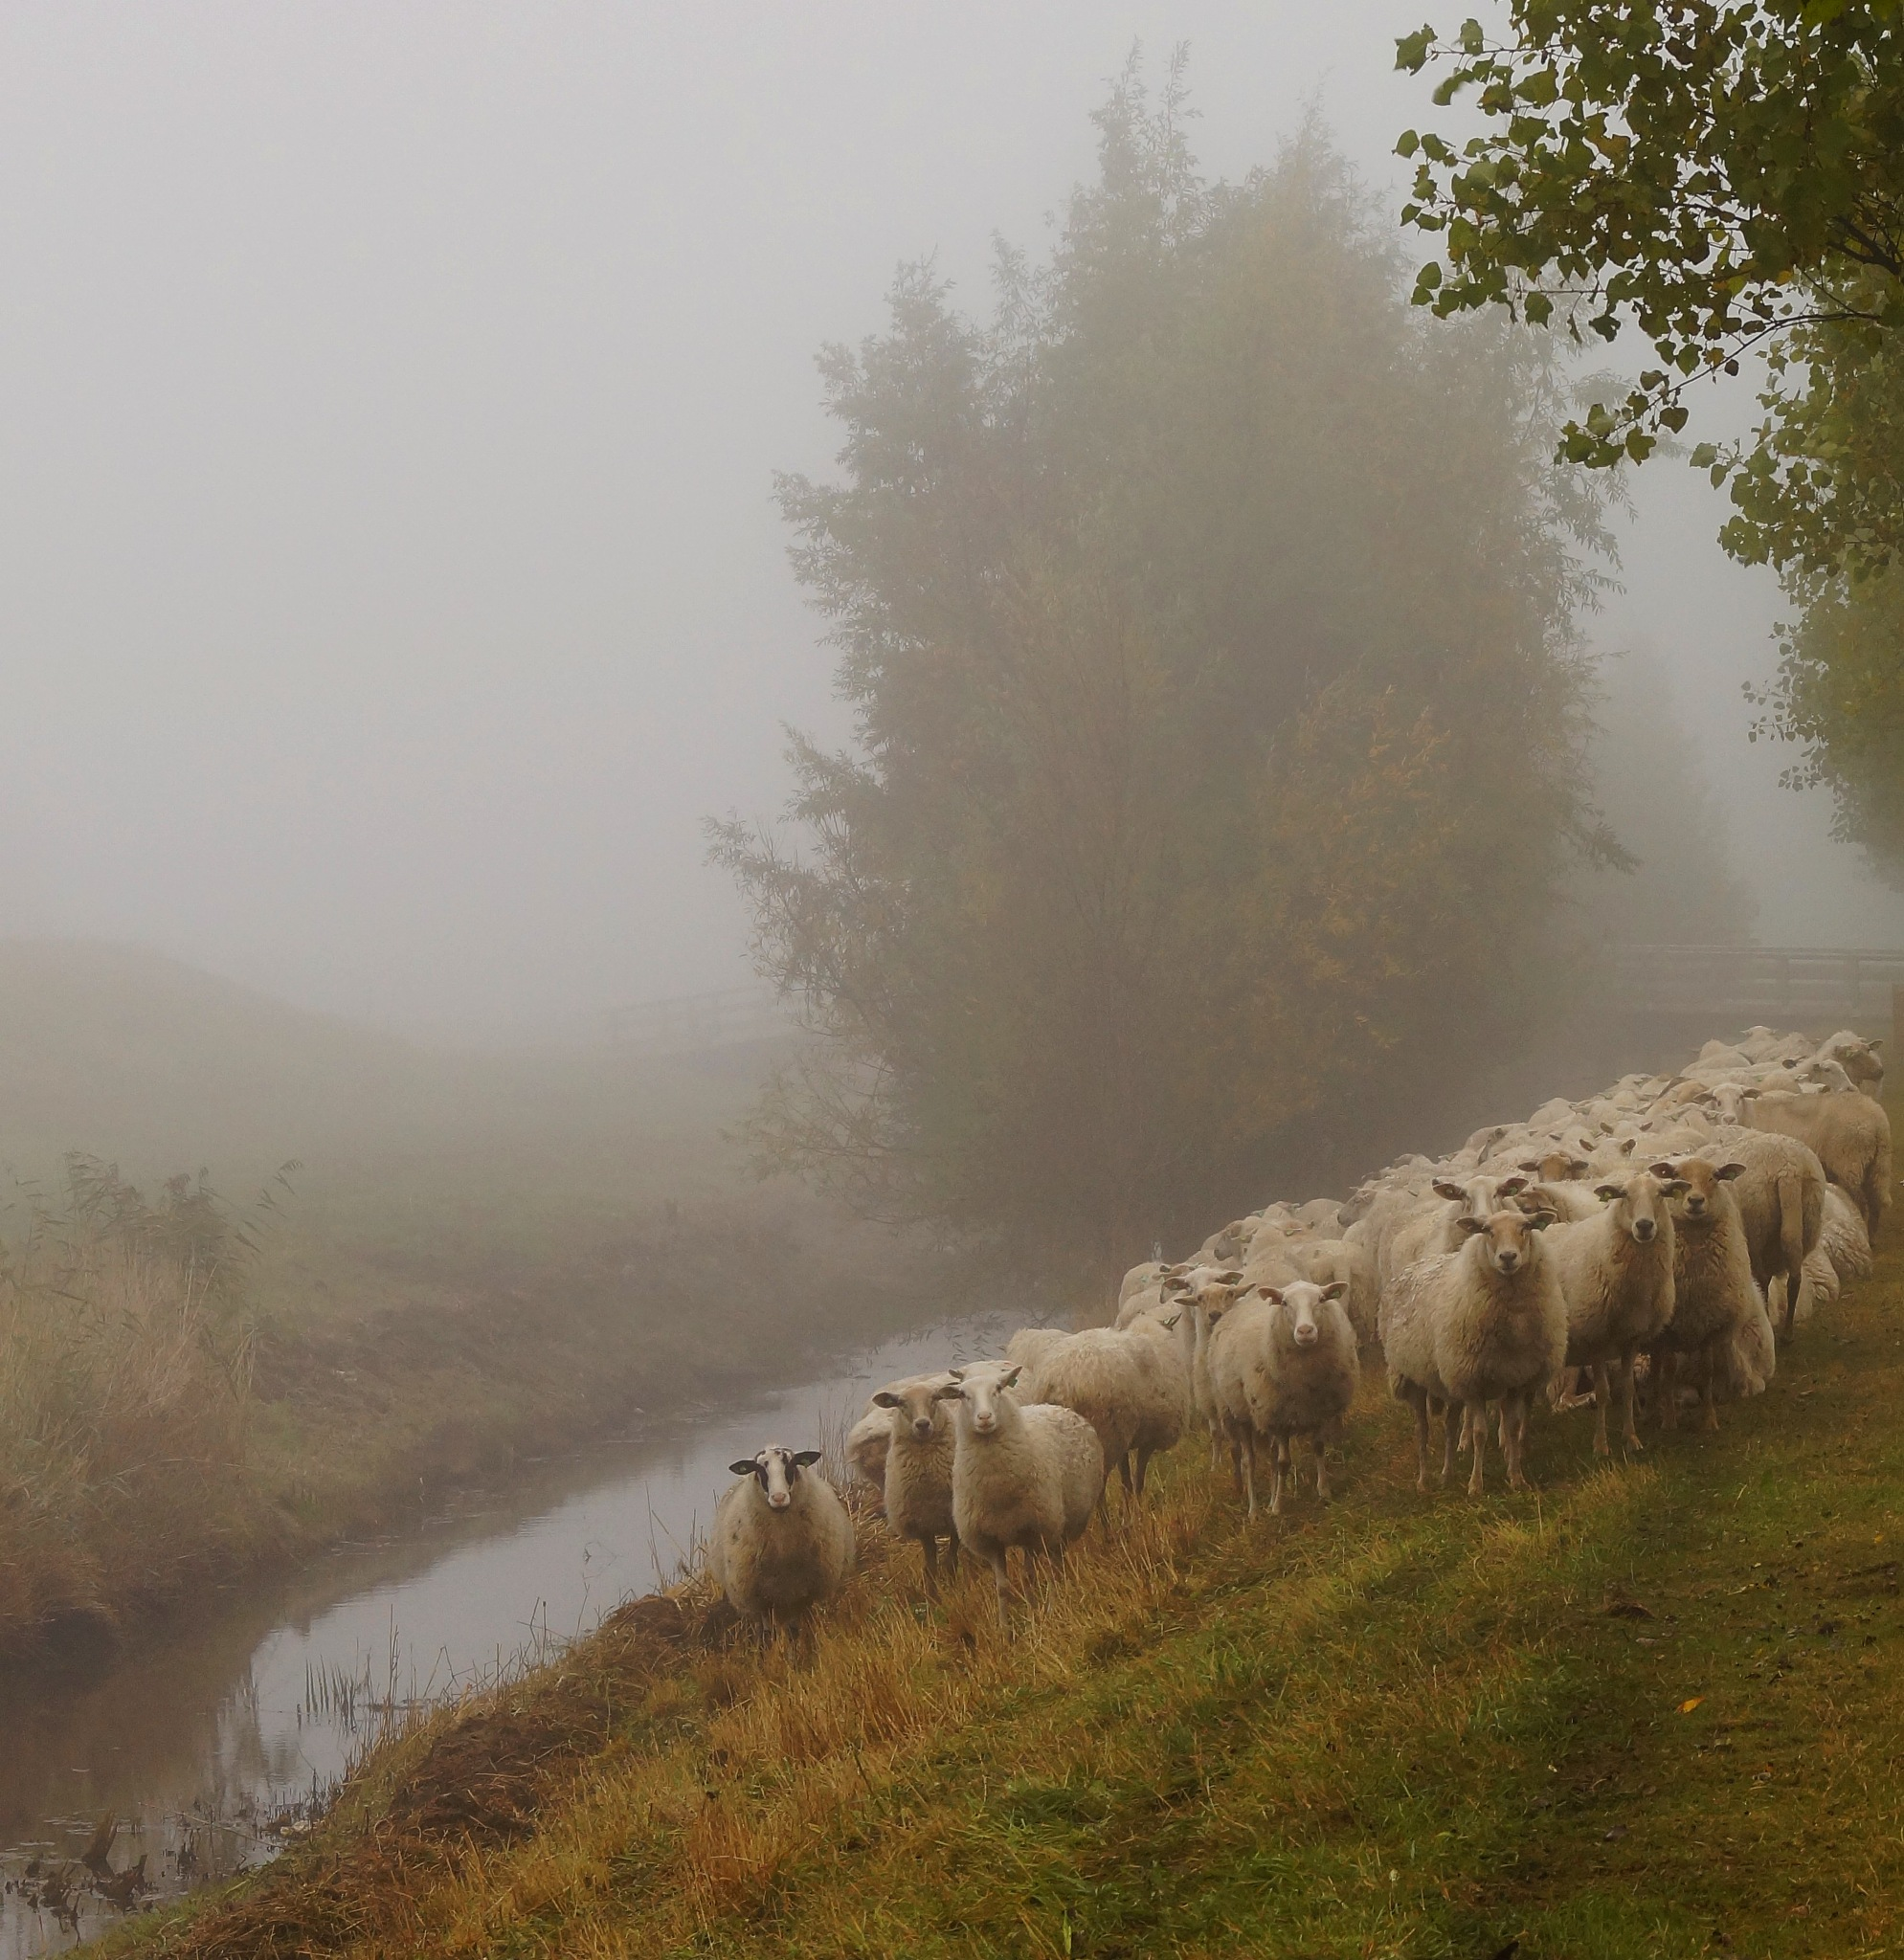 Sheep in the Mist by Marian Baay